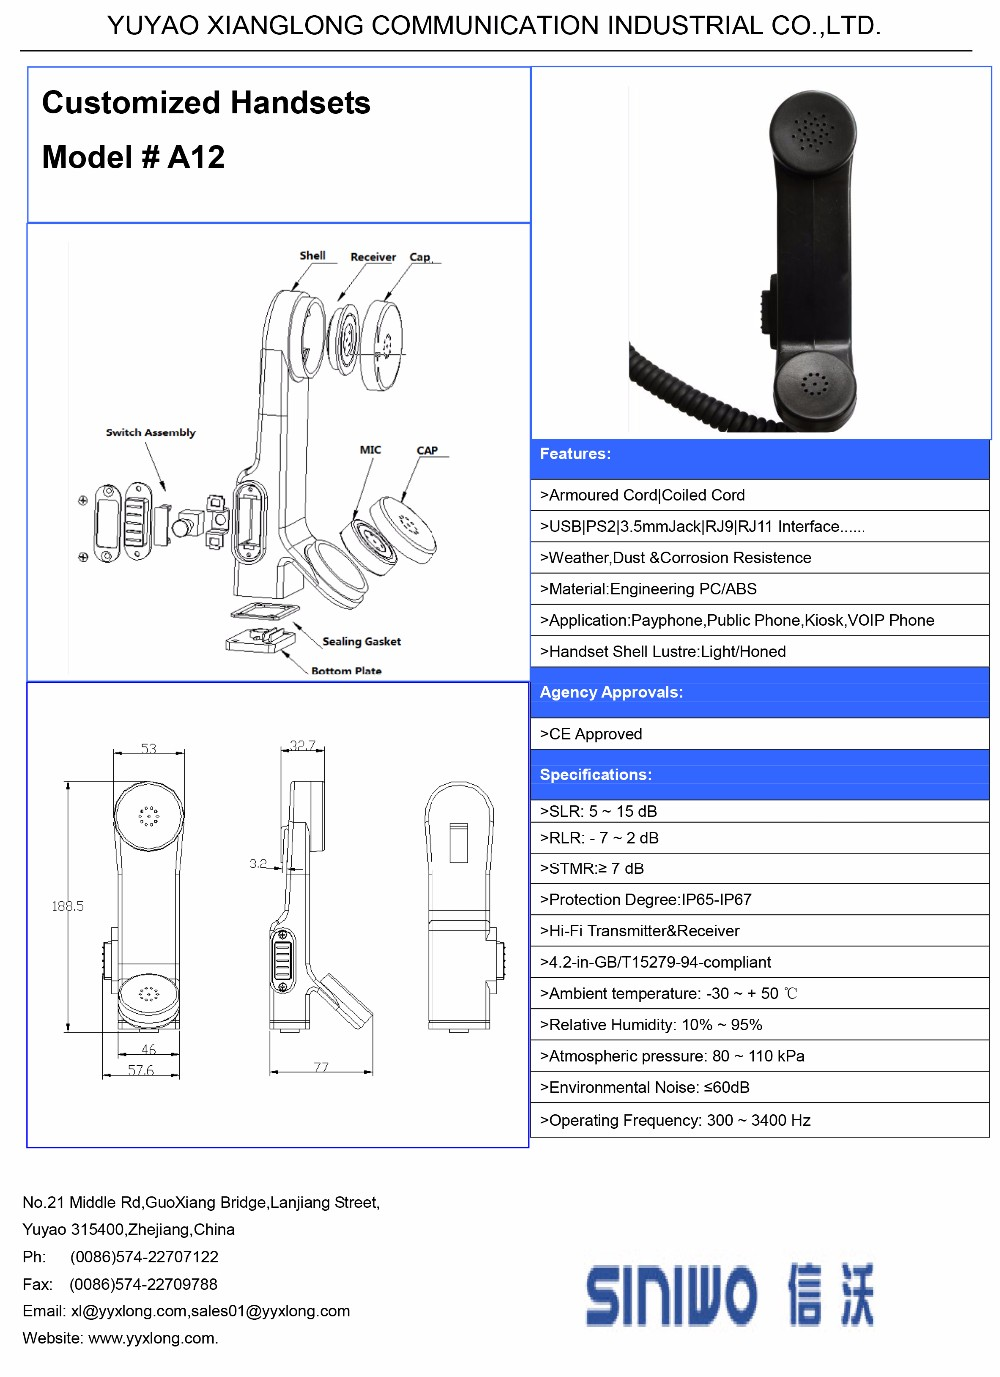 H 250 Handset Wiring Diagram Free Download Home Telephone Guide Vandal Resistant Wholesale Military U For